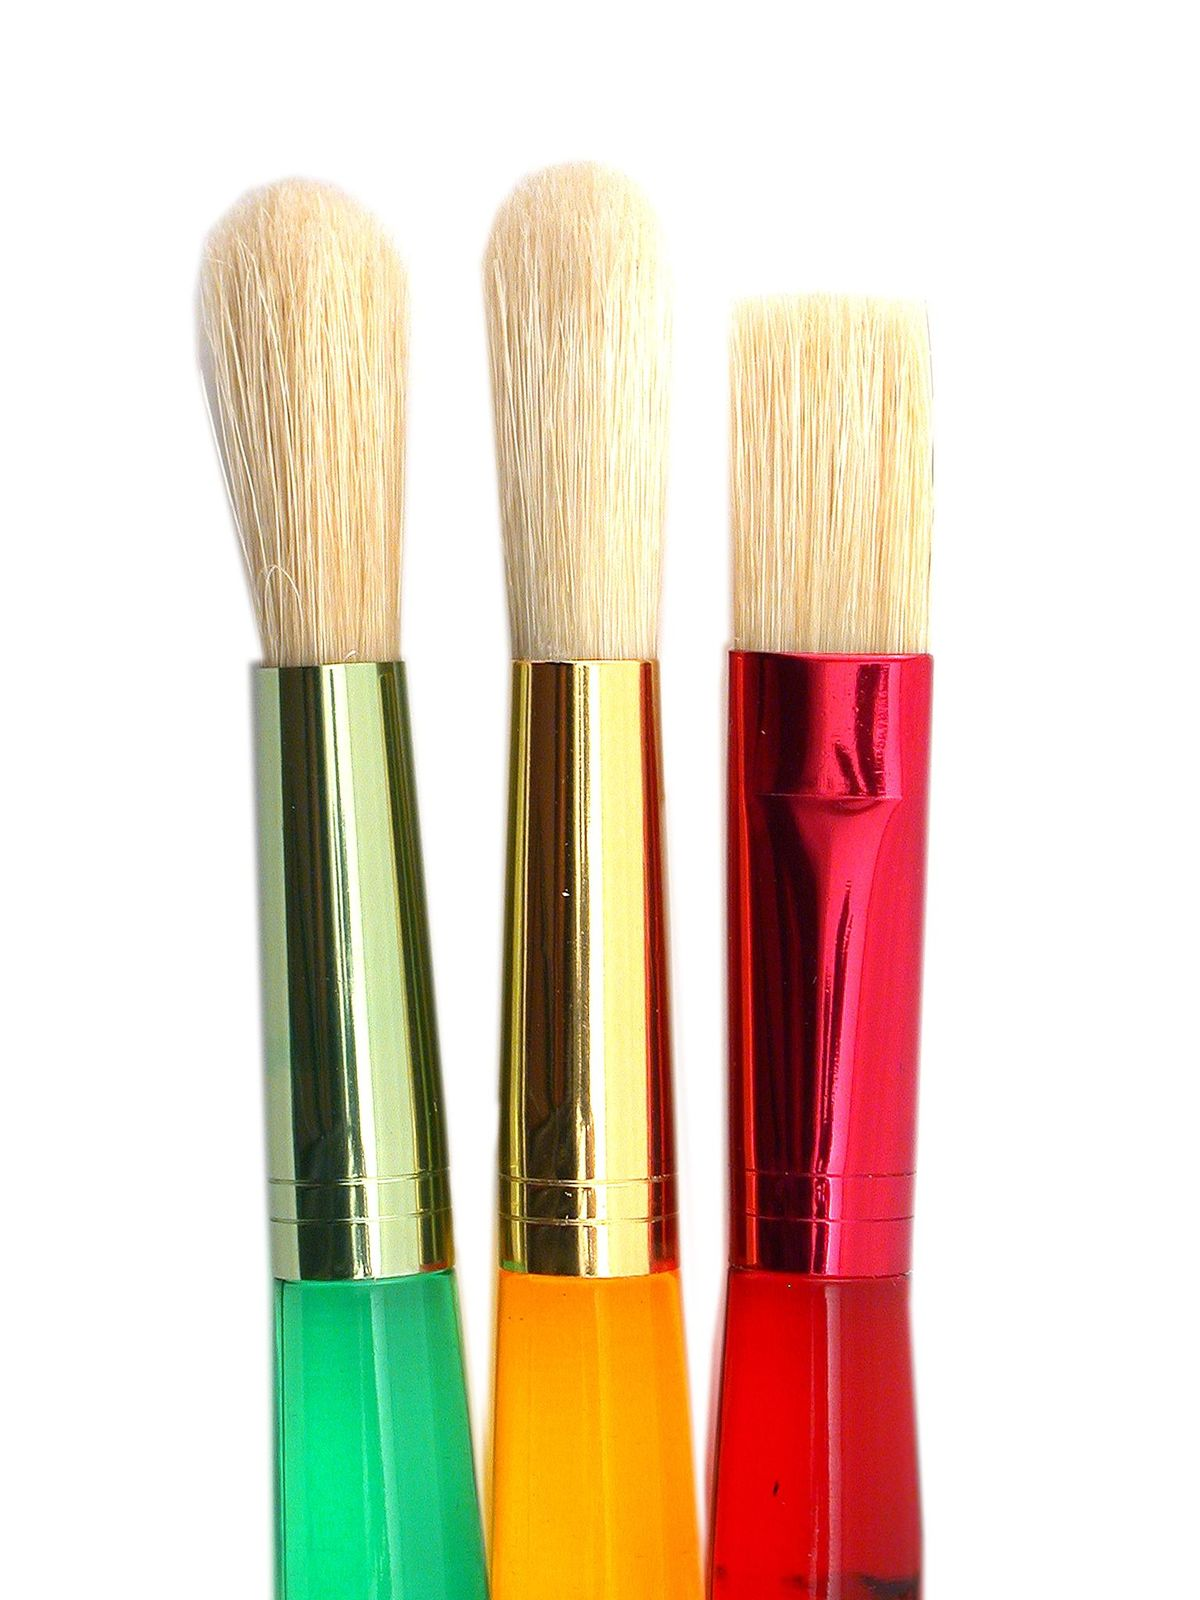 Big Kid's Choice 3-Piece Flat and Round Brush Set